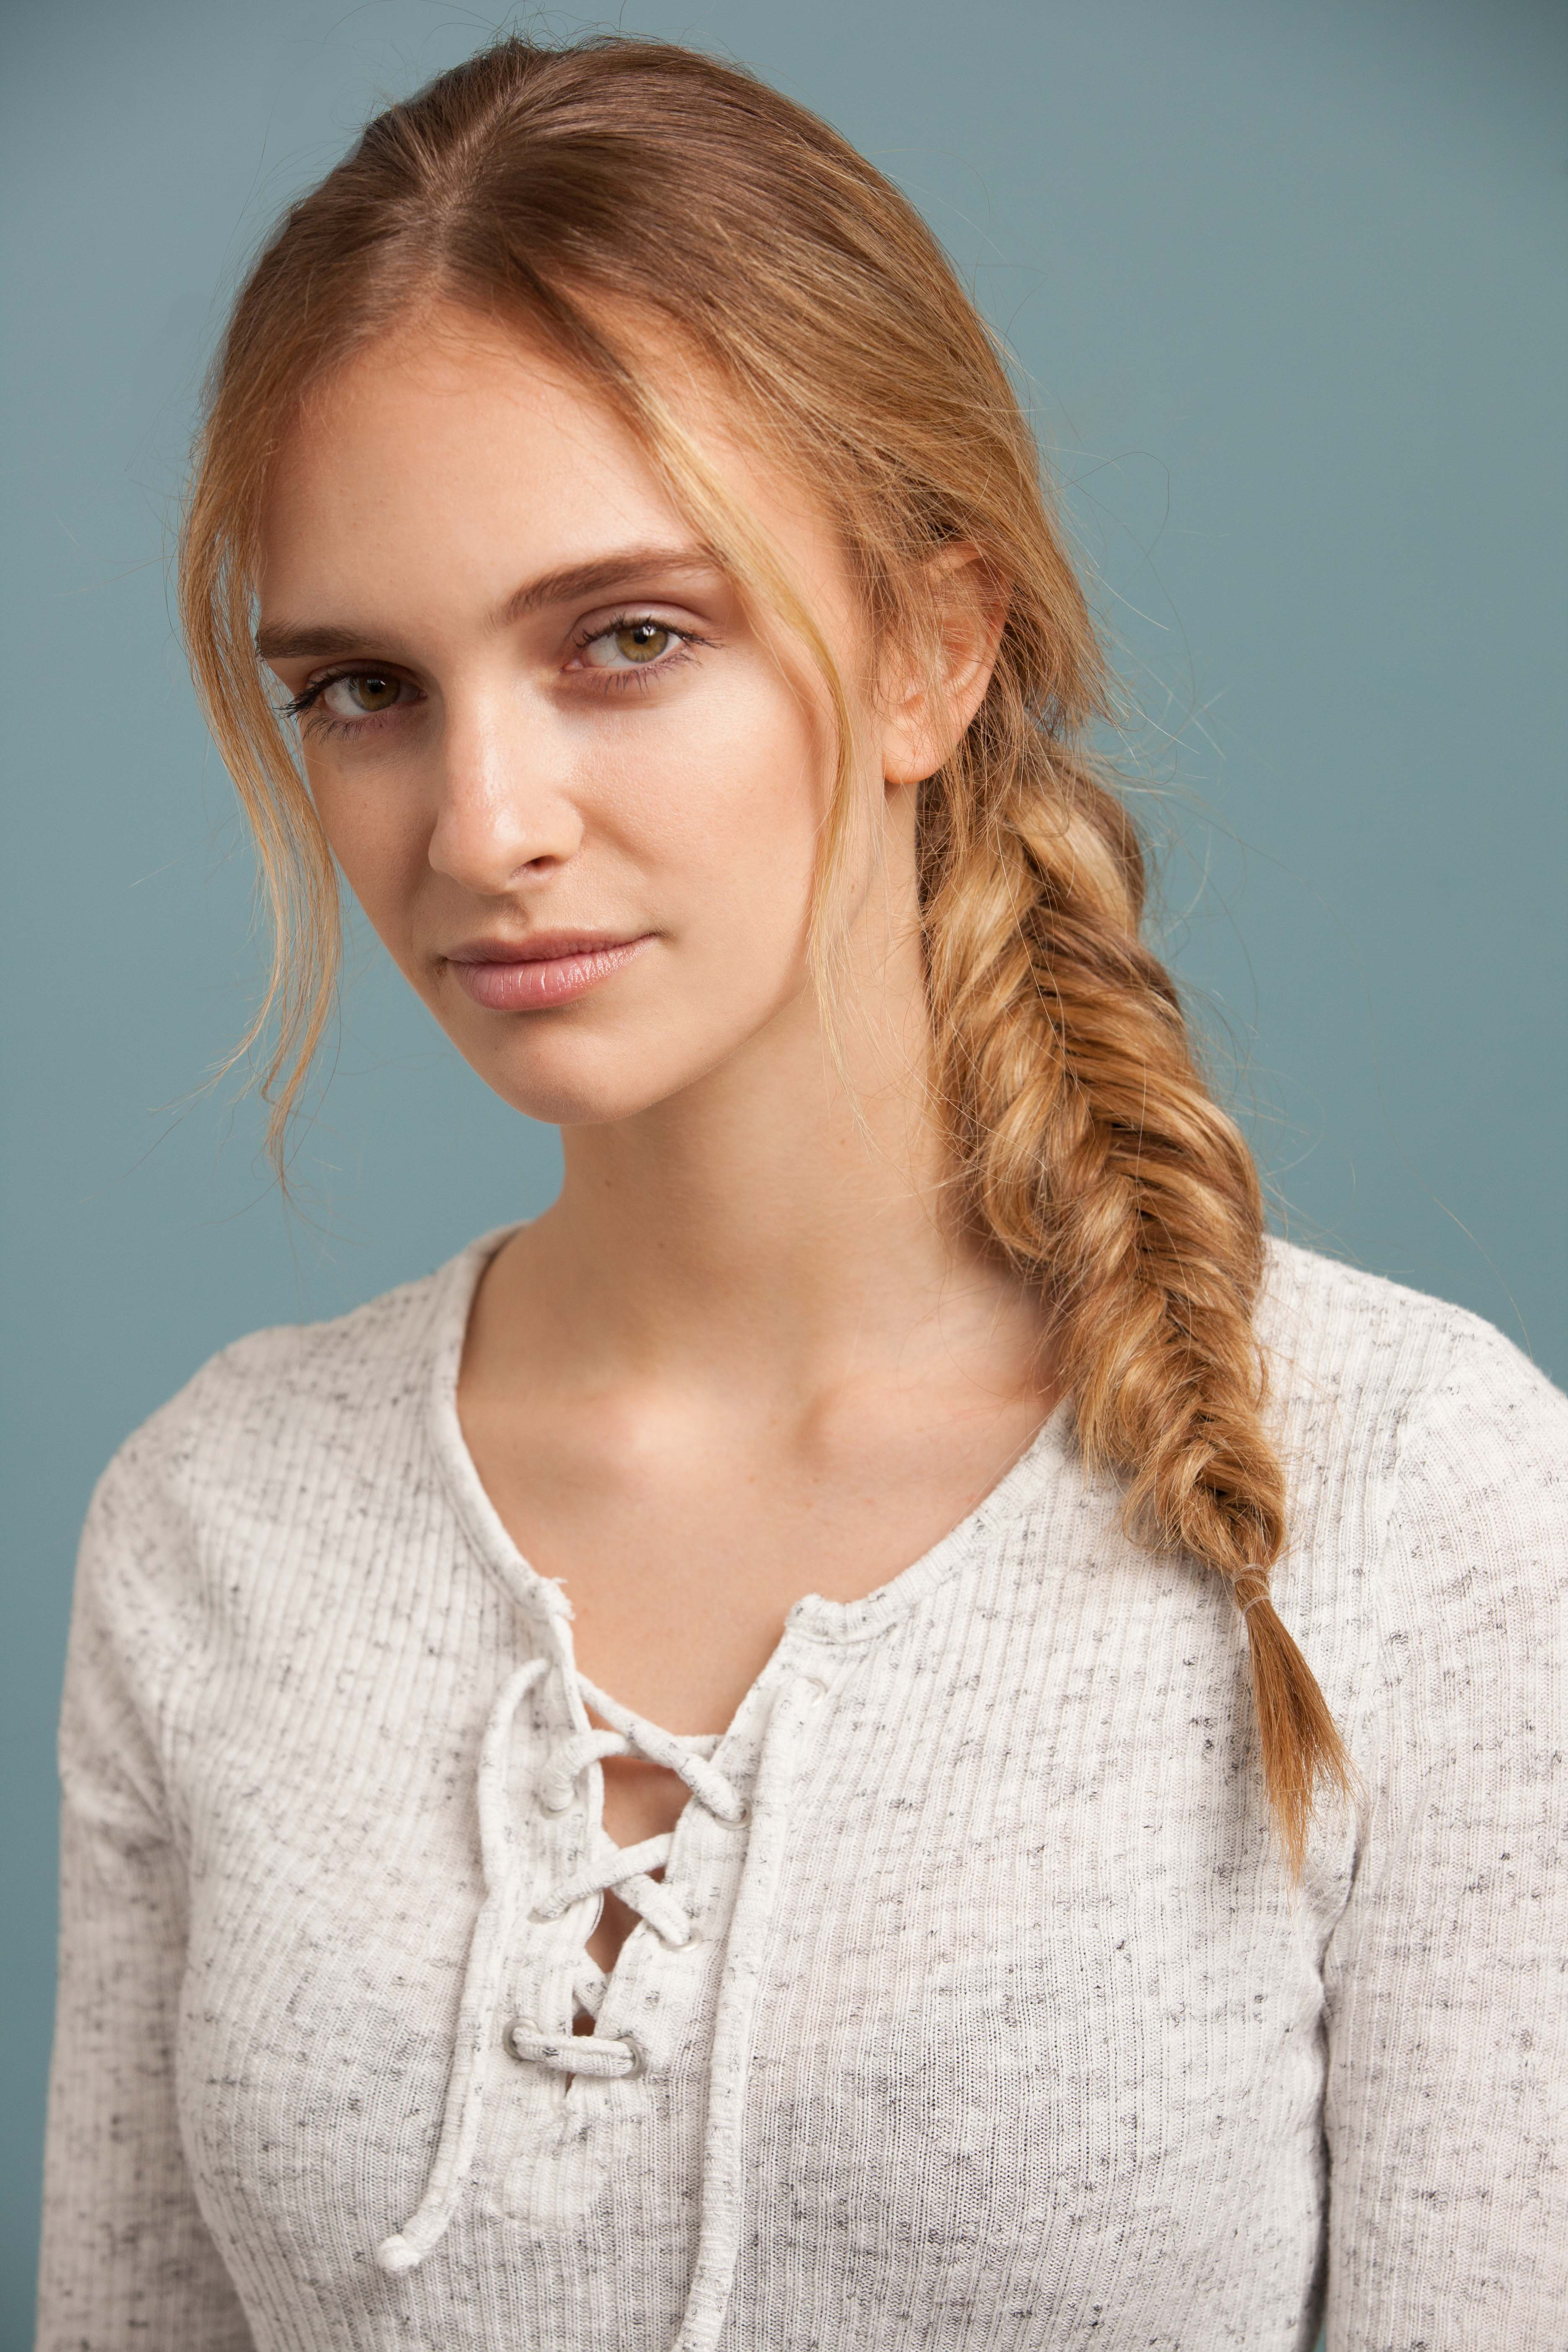 long-hairstyles-oval-faces-braids